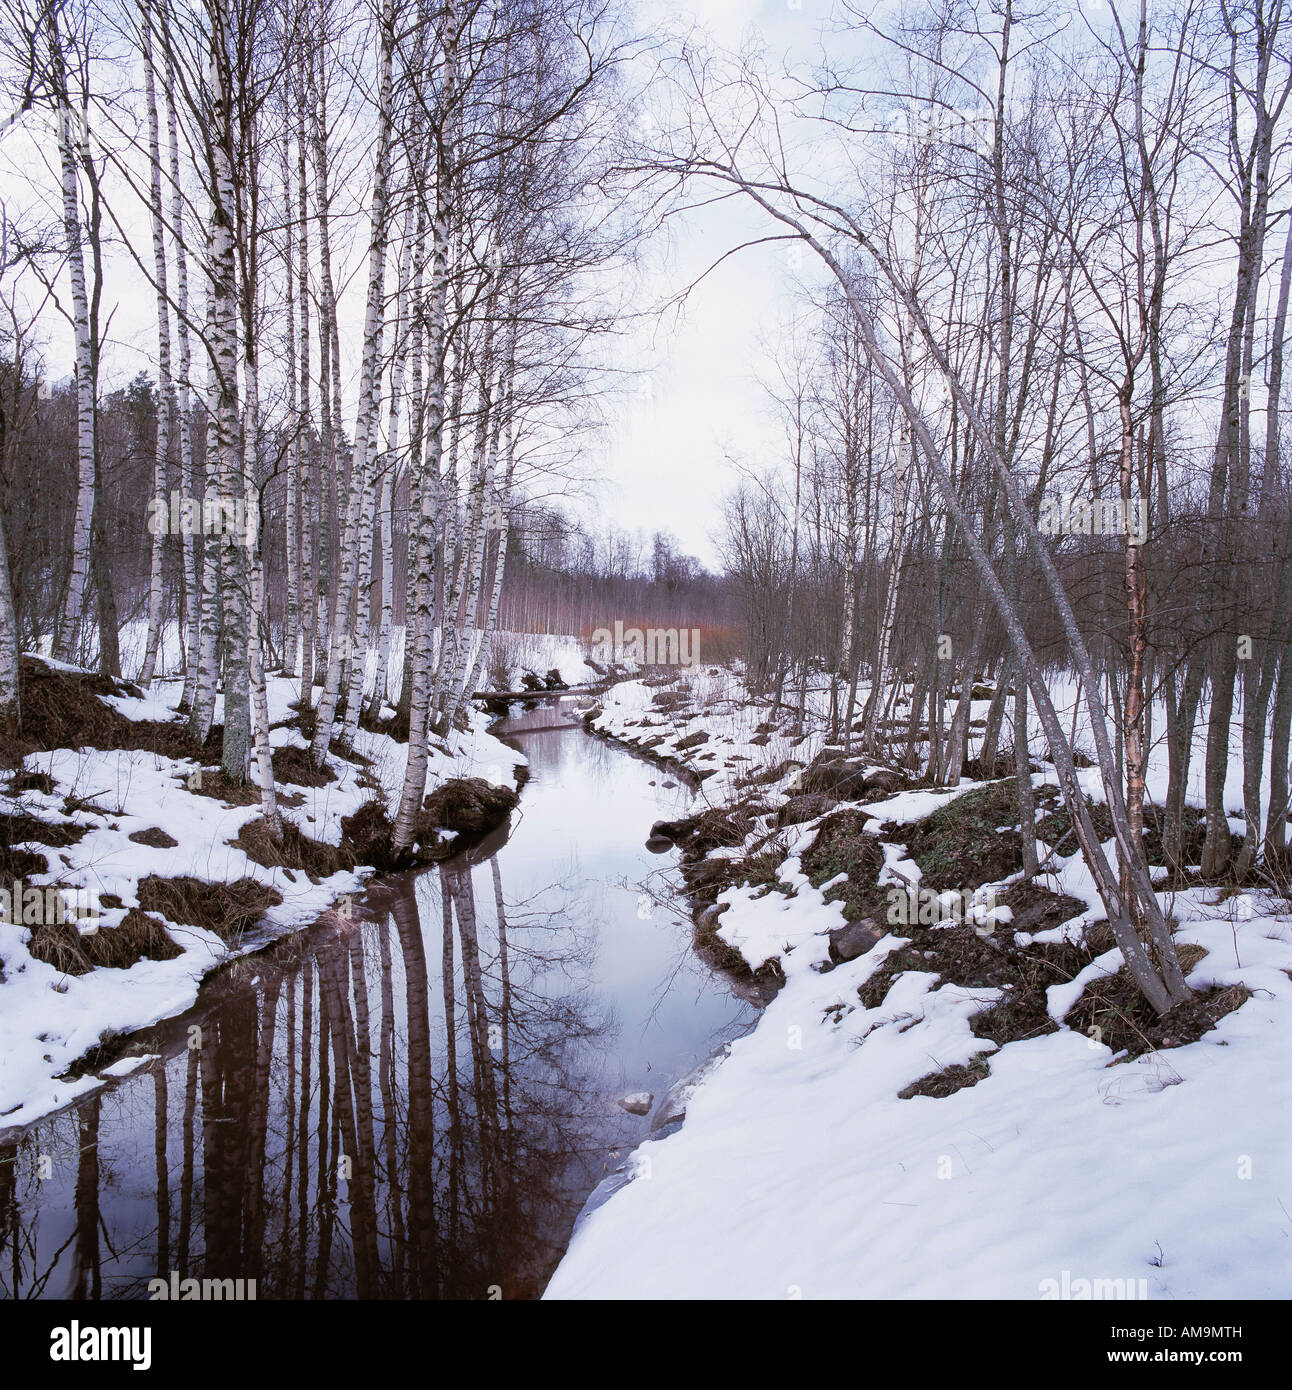 A snowy birch tree forest with a stream. - Stock Image